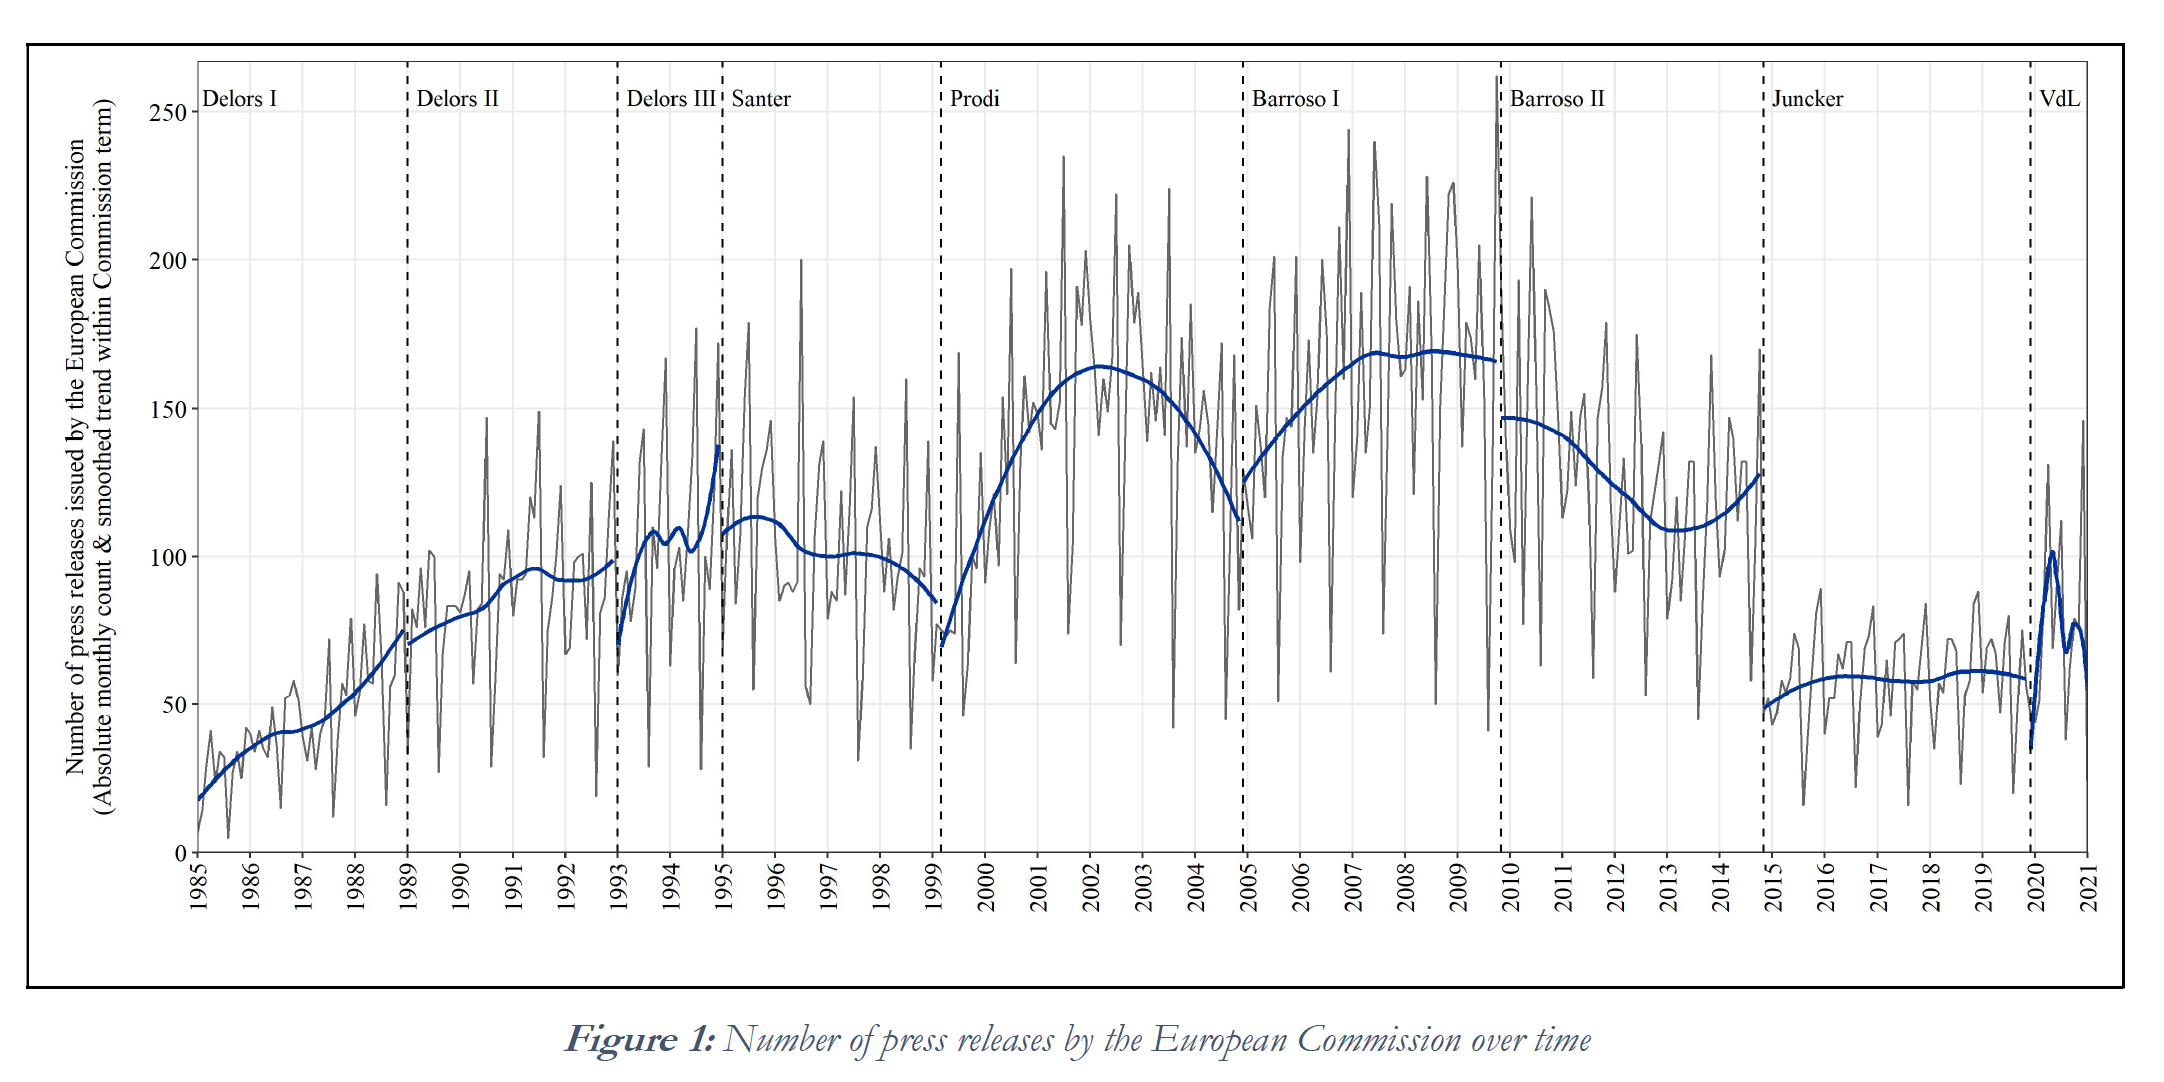 European_Commission_press_releases_over_time